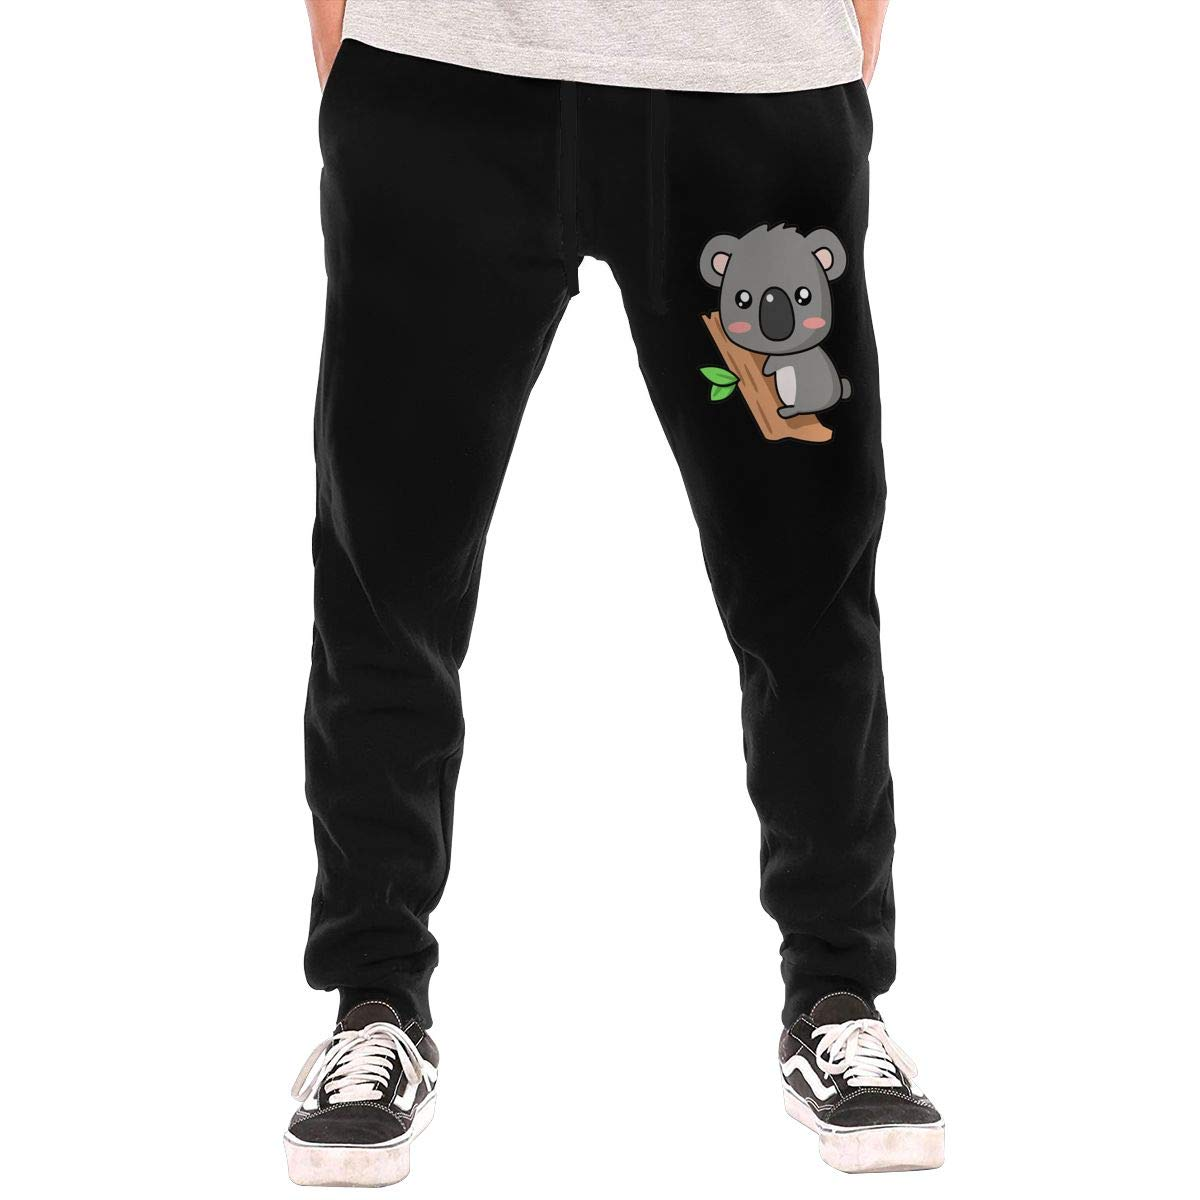 Cute Koala Drawstring Waist,100/% Cotton,Elastic Waist Cuffed,Jogger Sweatpants